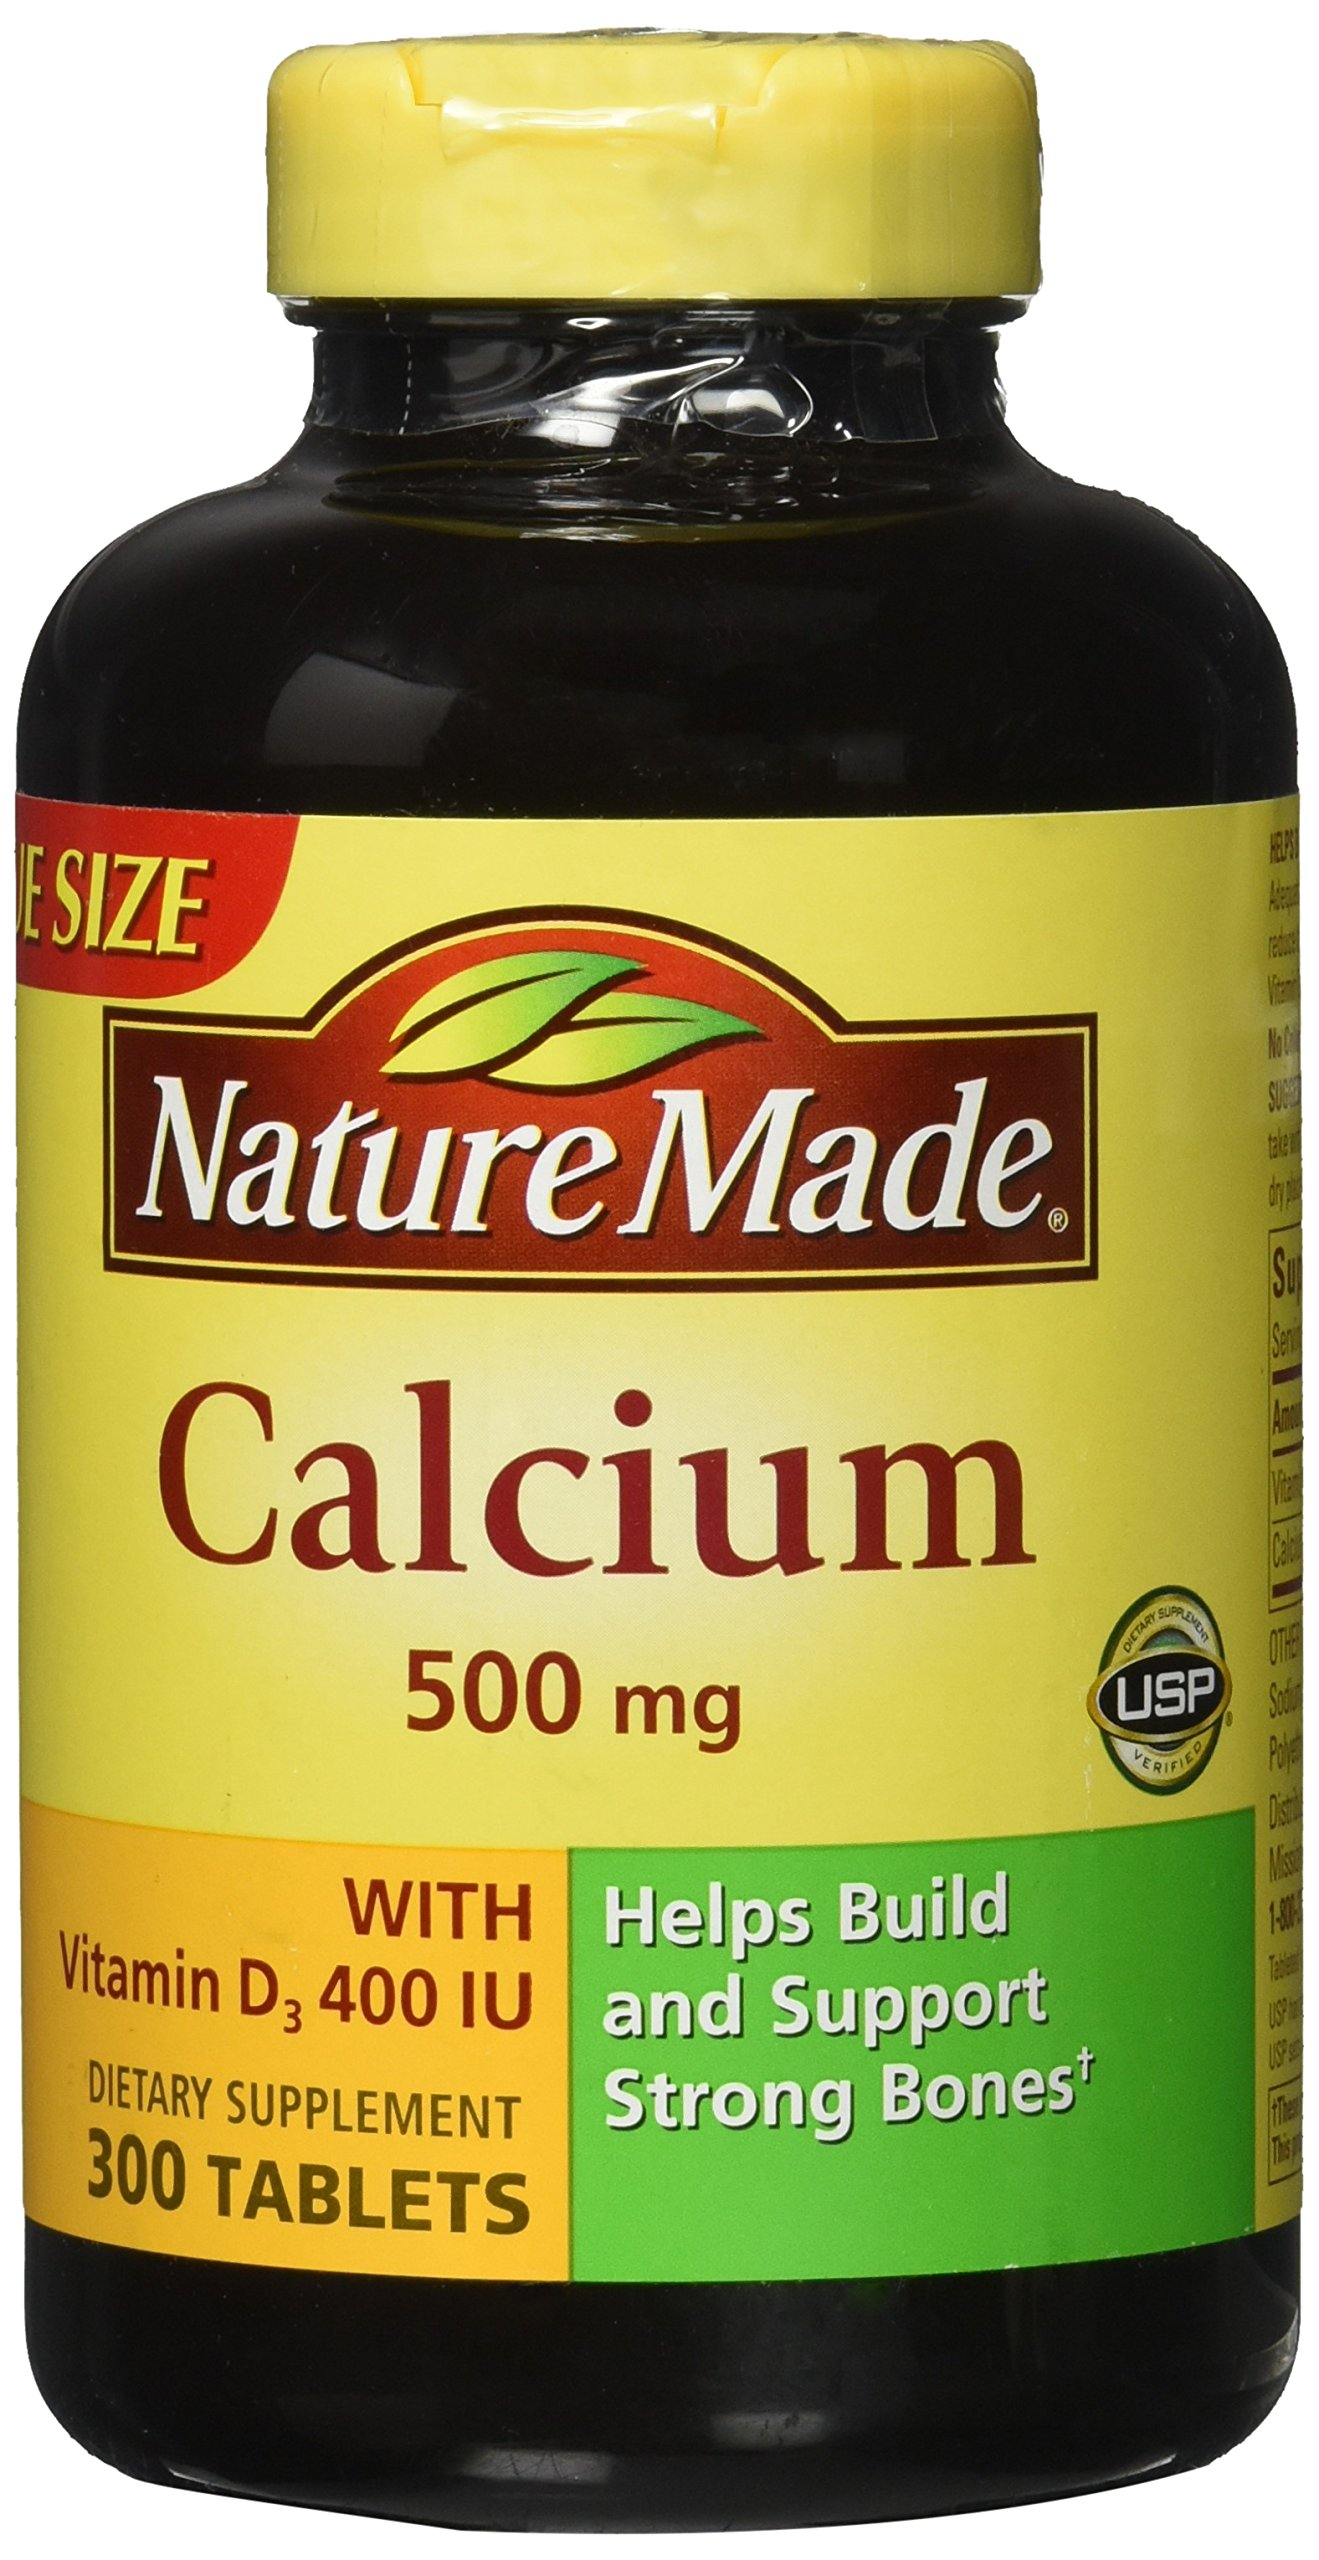 Nature Made Calcium 500 mg + Vitamin D3 Tabs, 300